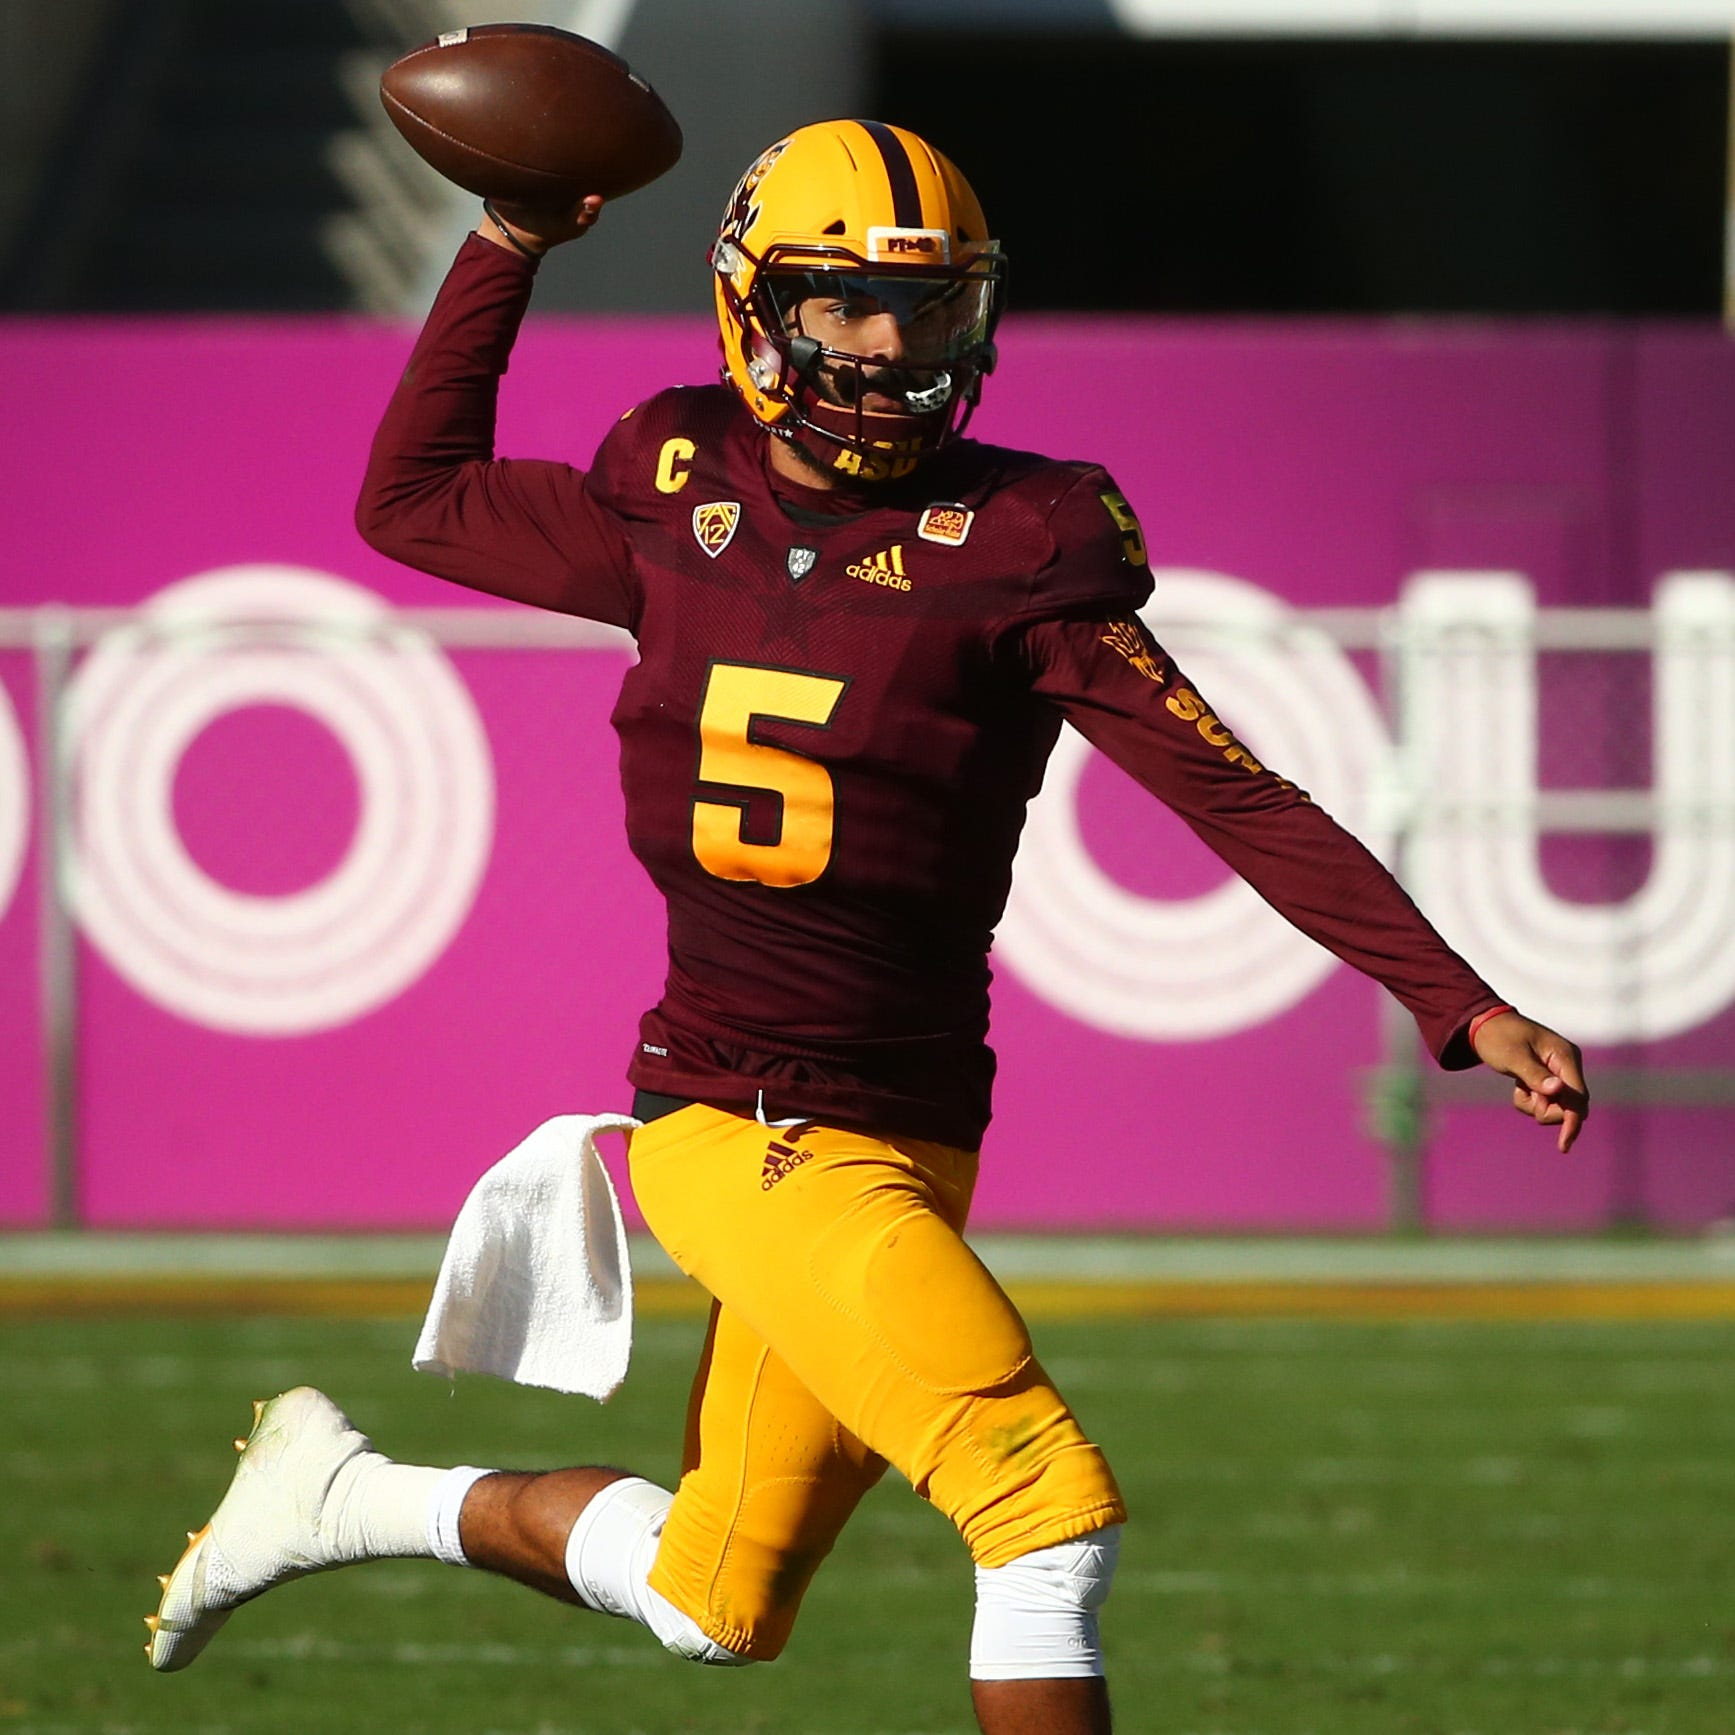 Scouting report: How does ASU match up with Oregon?